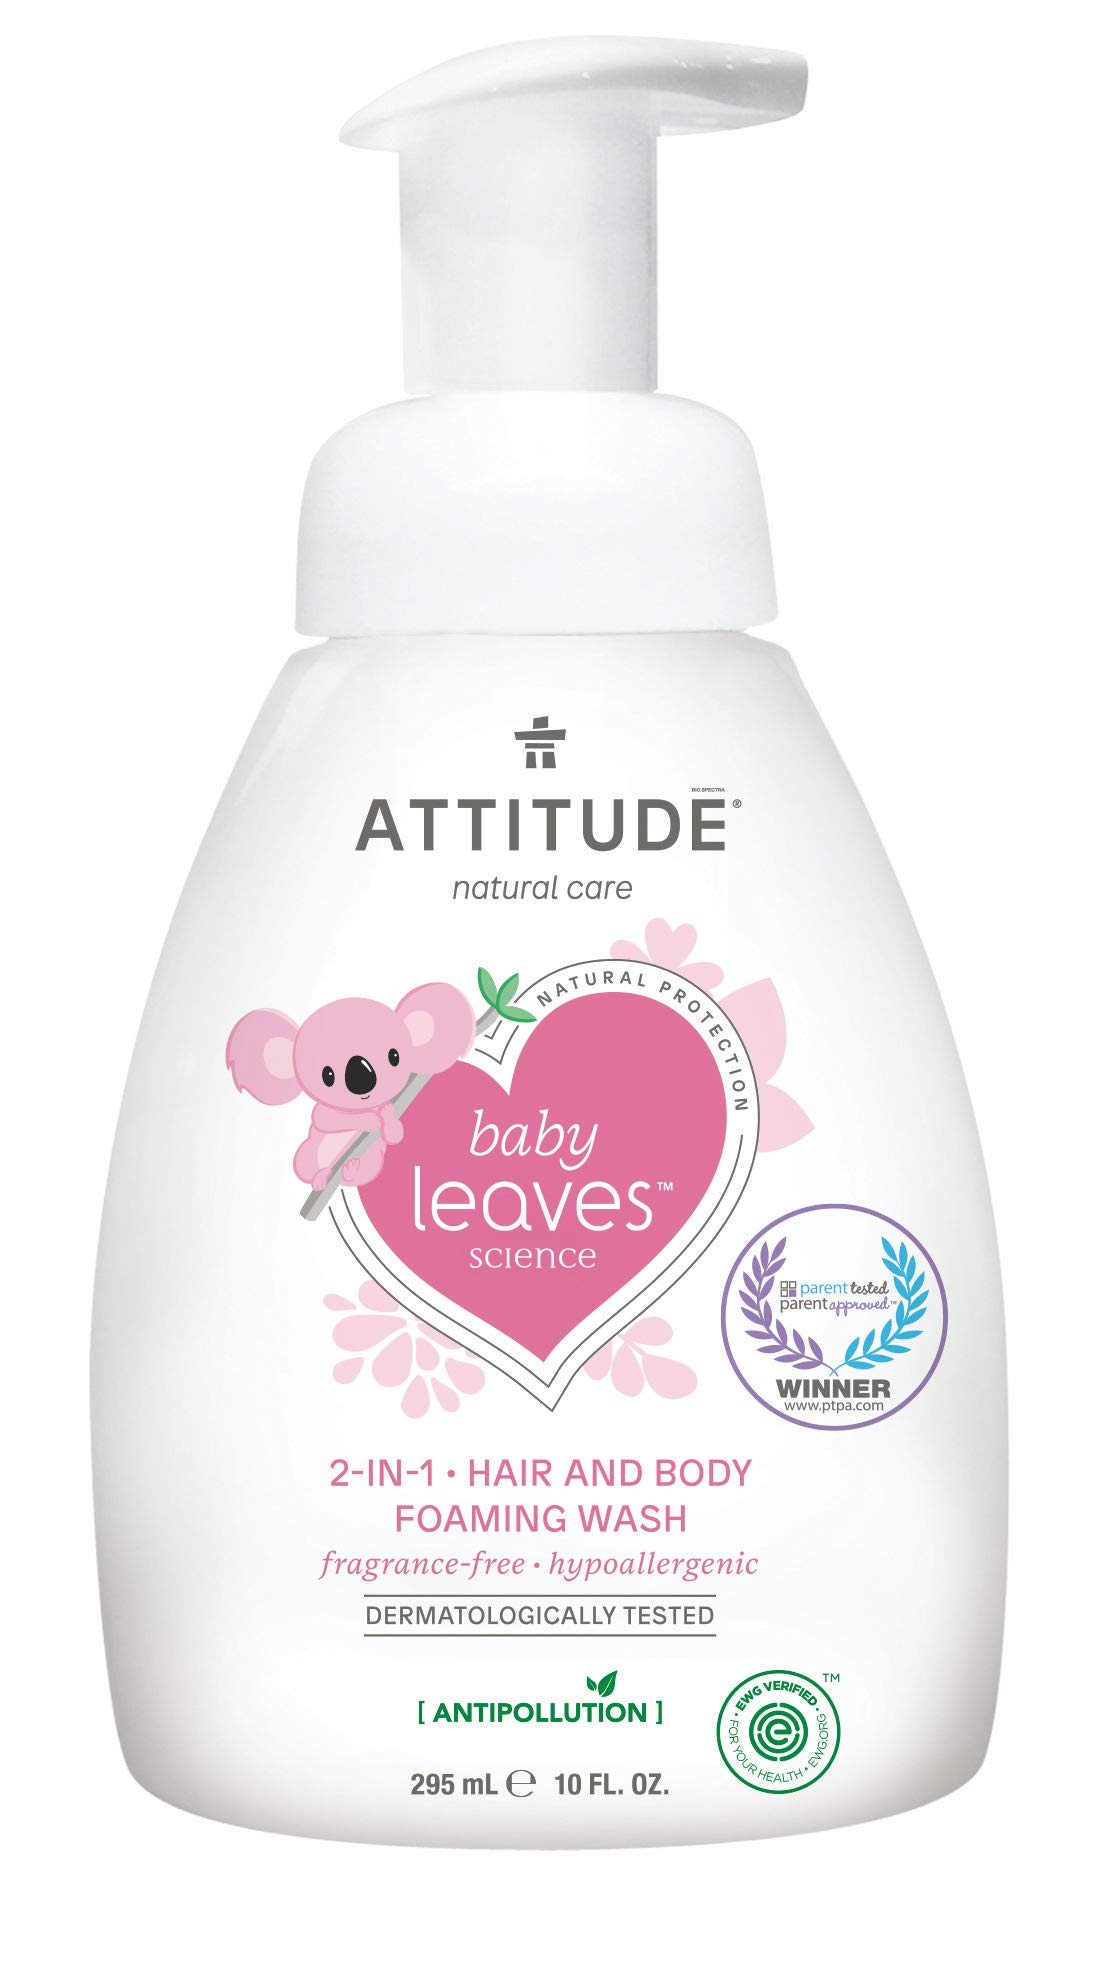 ATTITUDE Natural Baby 2-in-1 Hair and Body Foaming Wash, EWG Verified, Hypoallergenic, Fragrance Free, 10 Fluid Ounce (295 mL)